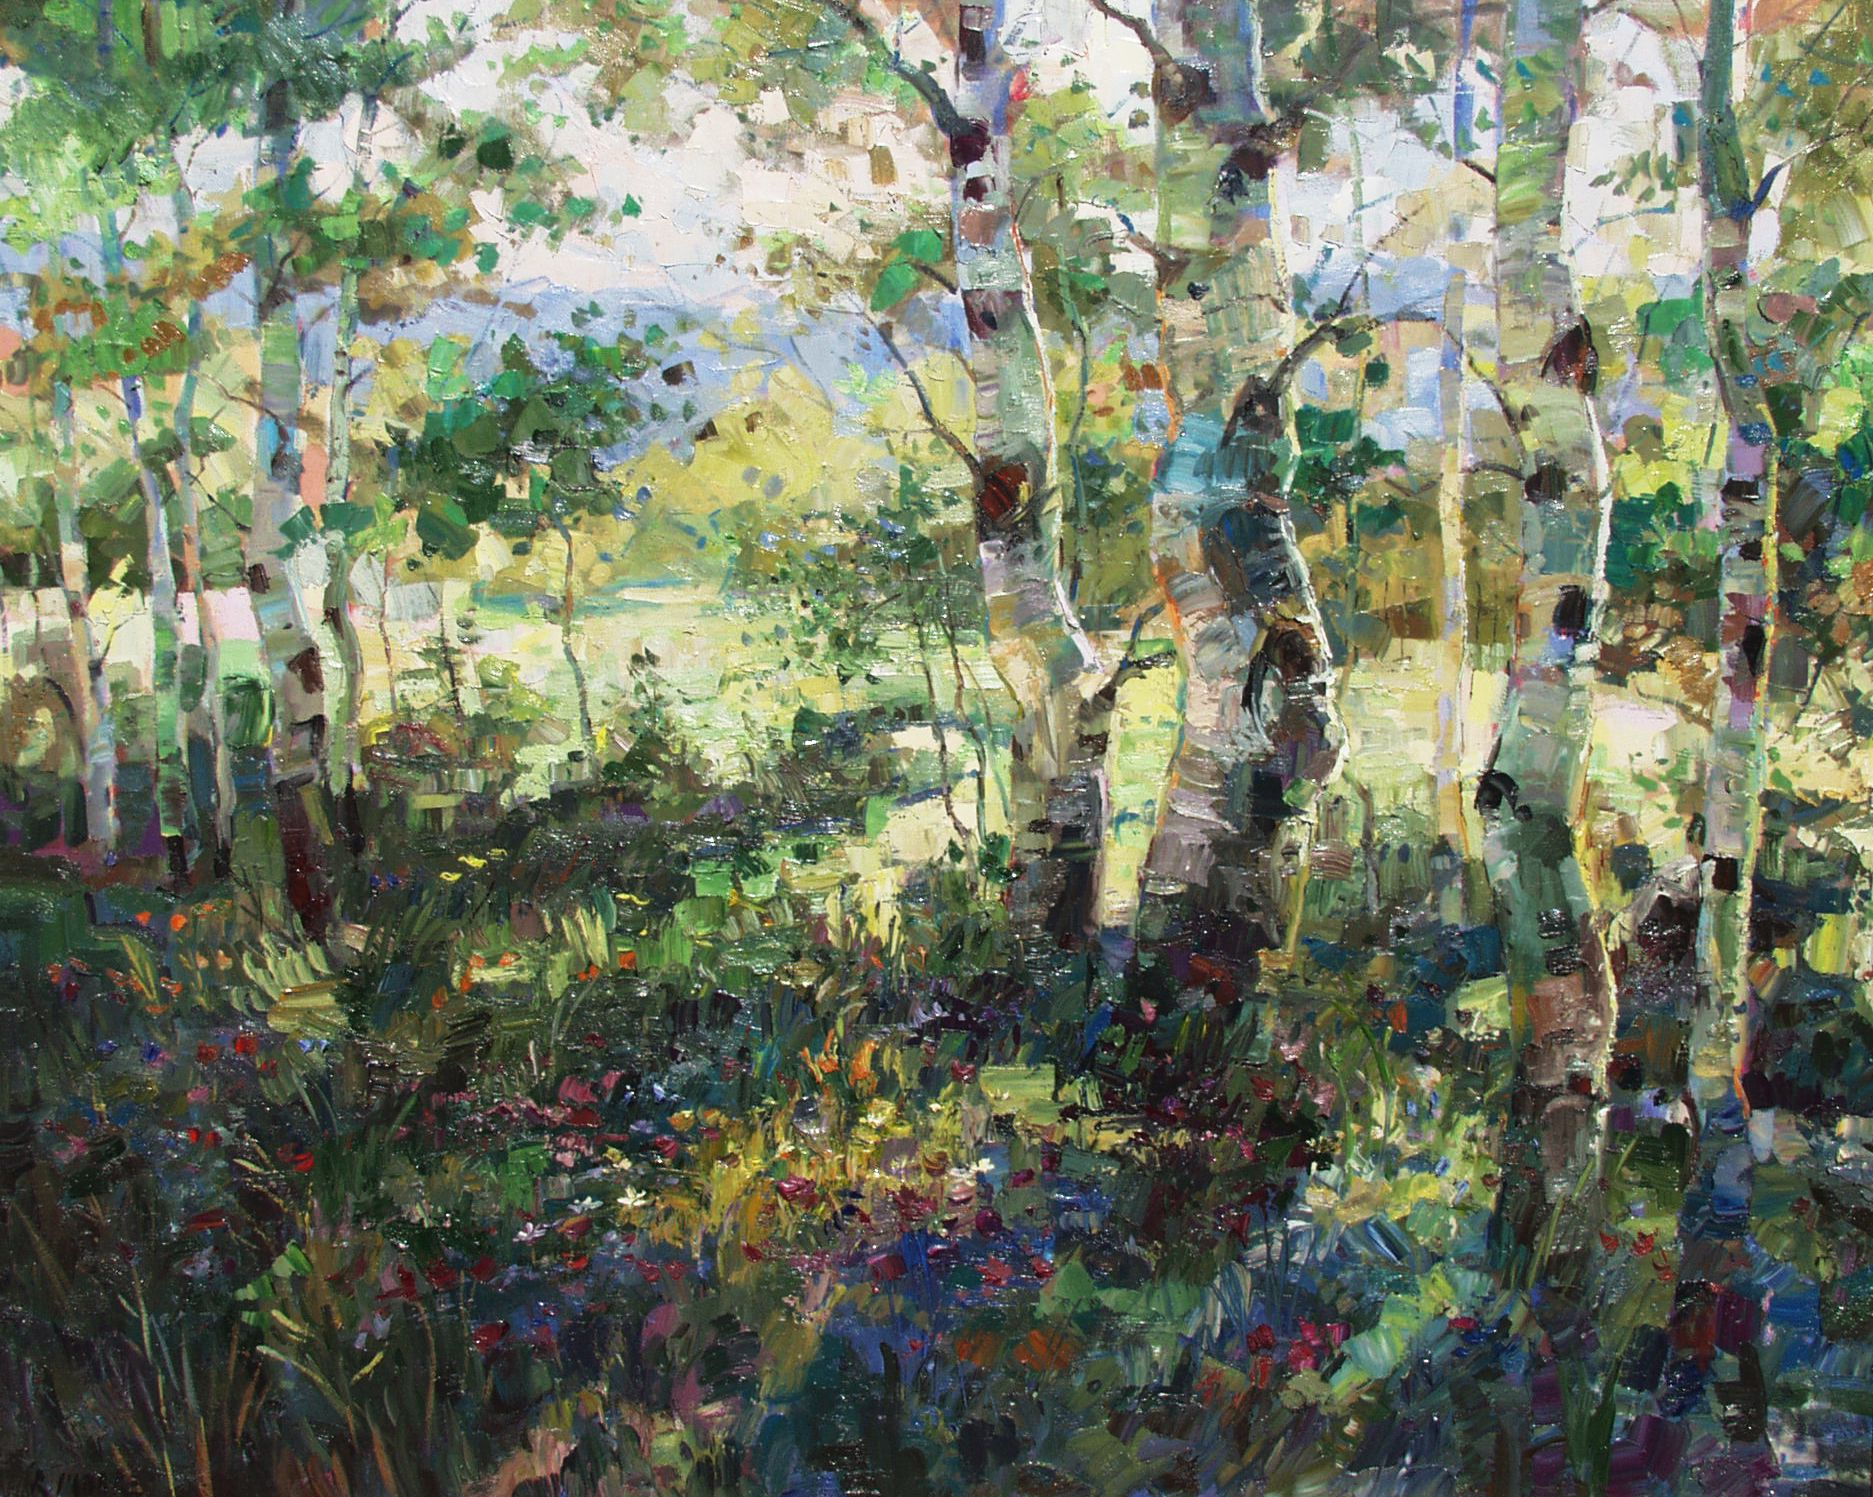 Robert Moore, American Impressionist - Available Aspen Index